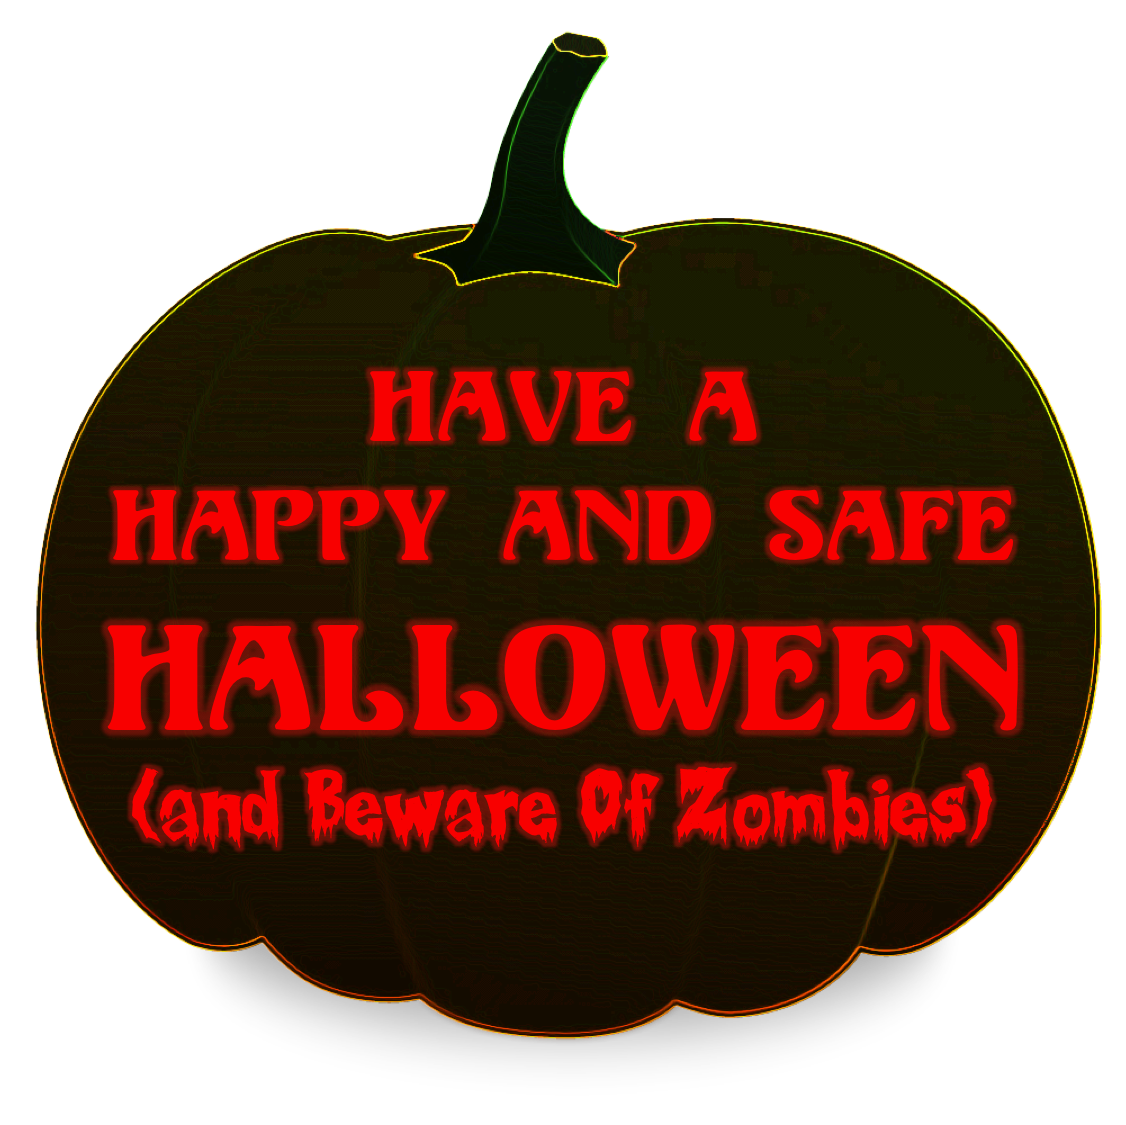 Clipart halloween safety. Have a happy and